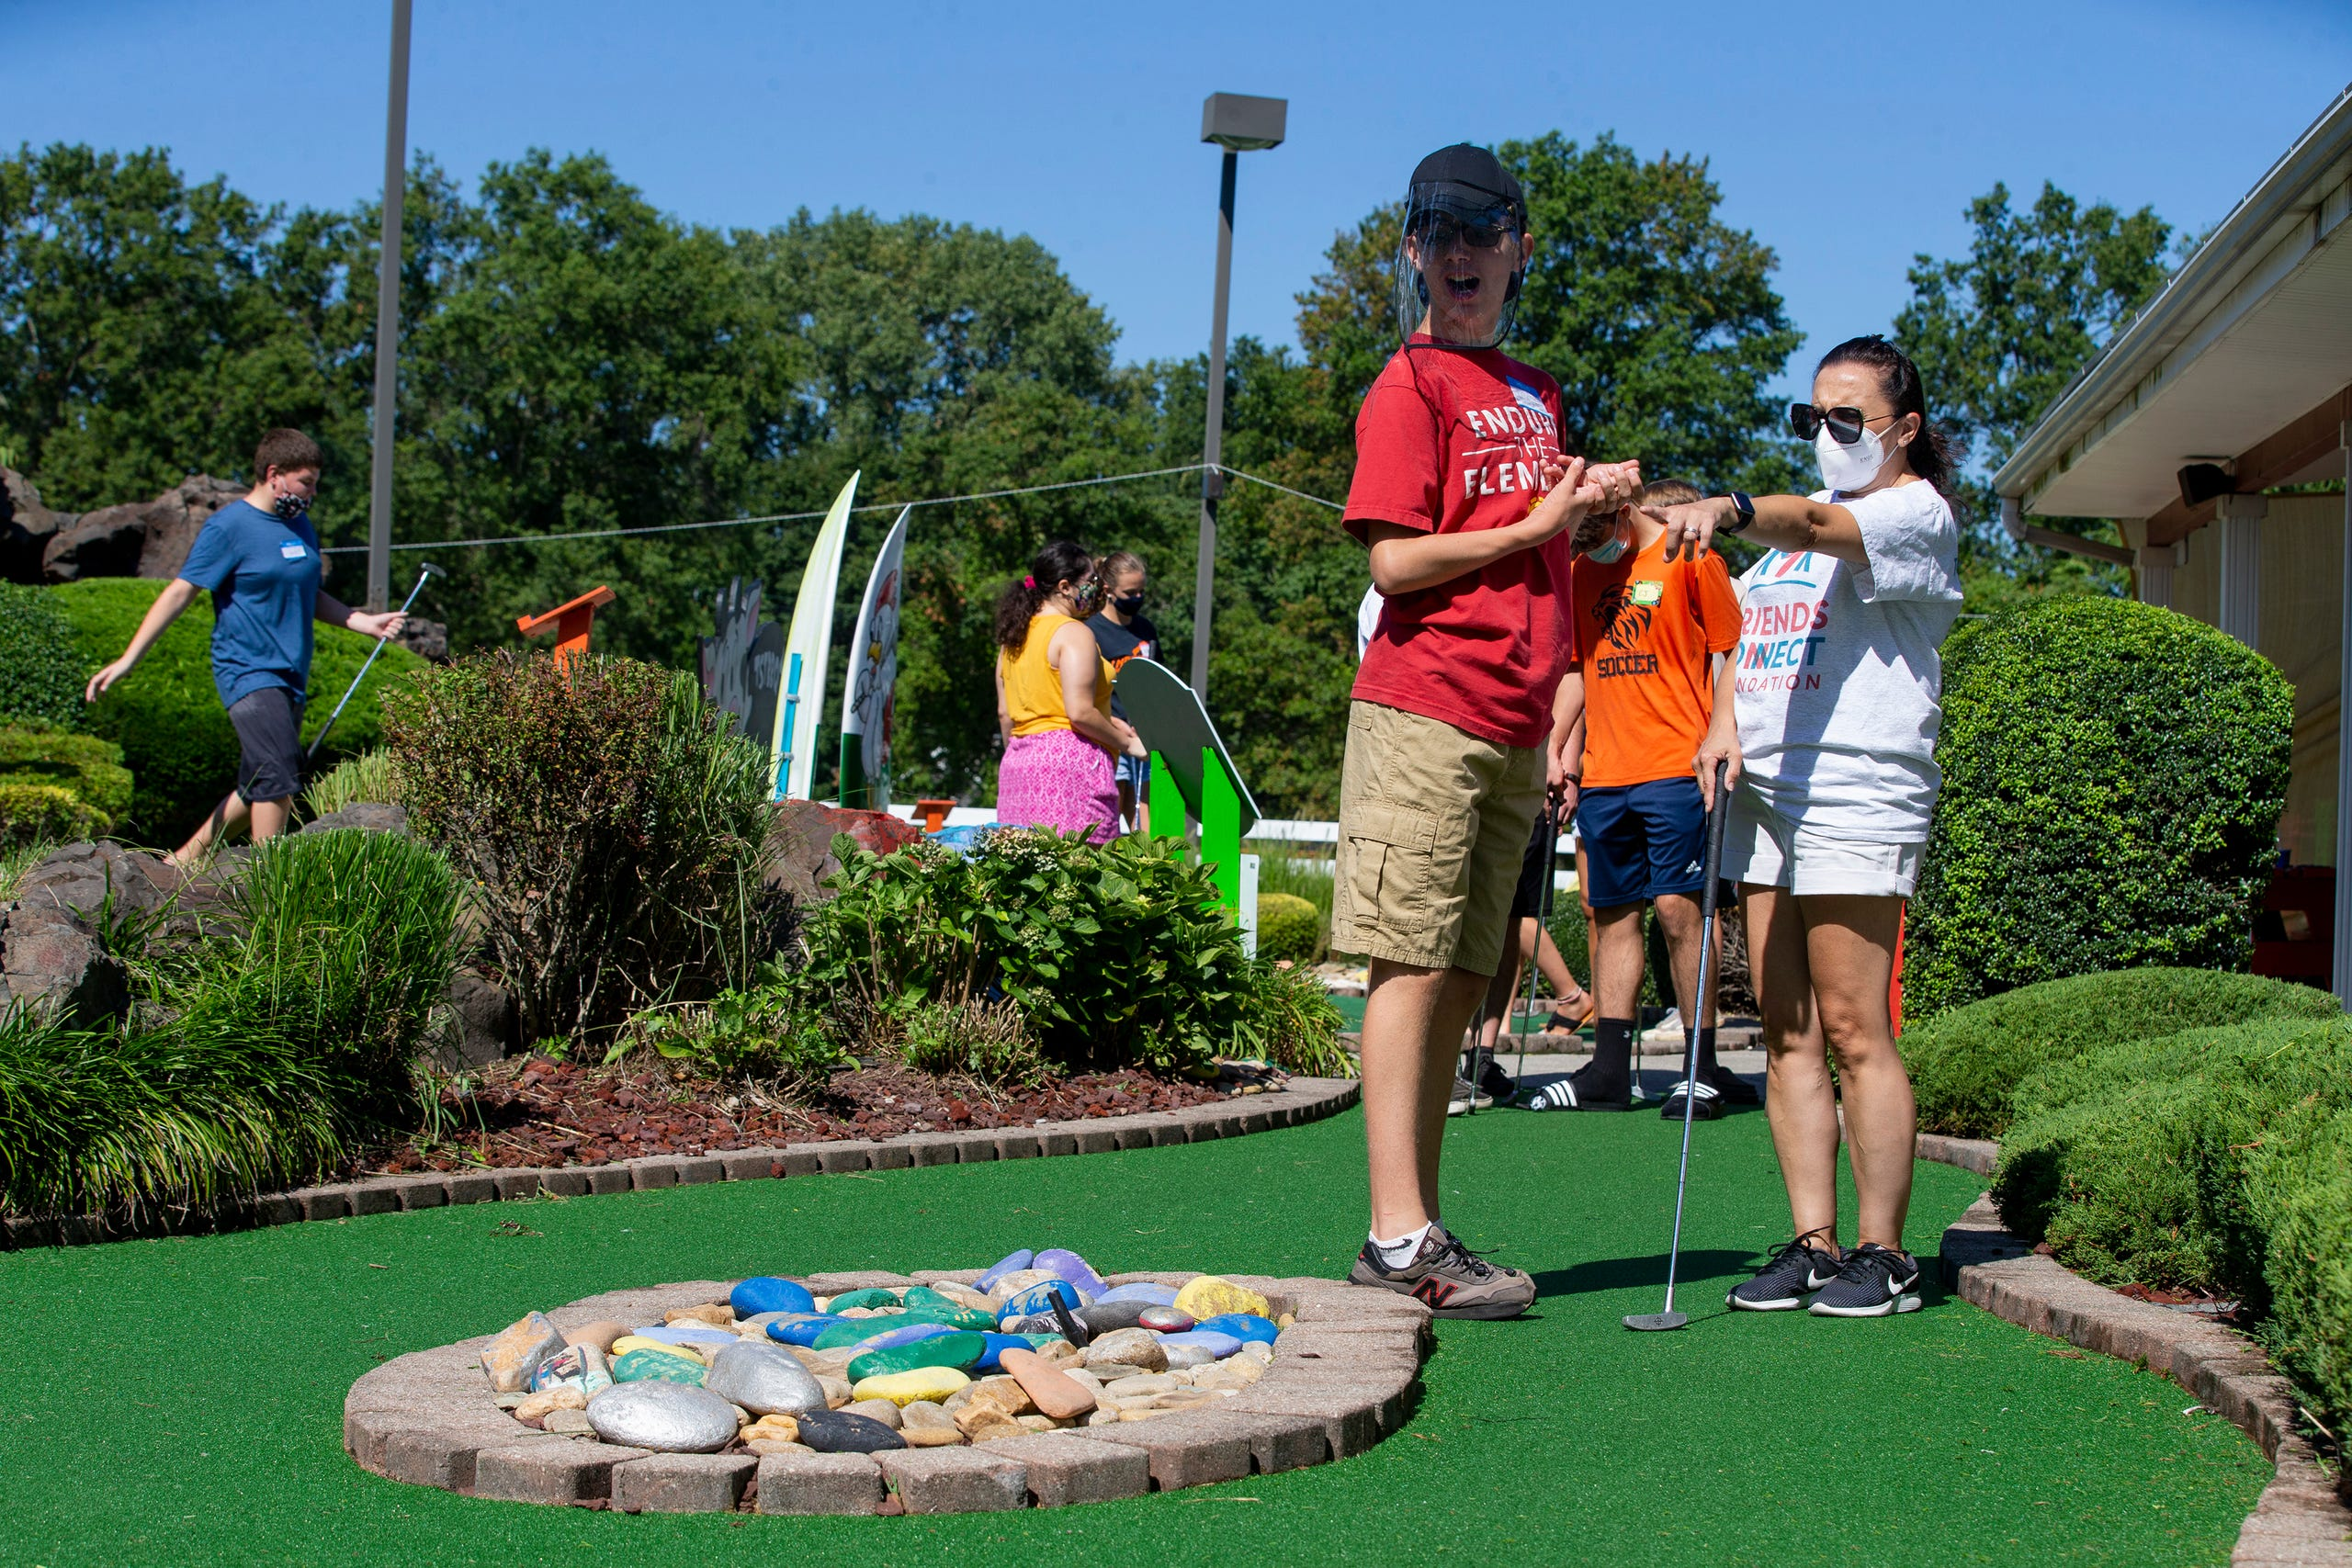 (right) Andrea Ziajski of Middletown, a volunteer with the Friends Connect Foundation, teaches (left) Matty Driscoll, 16, of Fair Haven to golf as members of the Middletown North boys soccer team play mini-golf with a group of special-needs kids as part of Friends Connect Foundation at TST BBQ & Mini Golf in Middletown, NJ Tuesday, August 18, 2020.